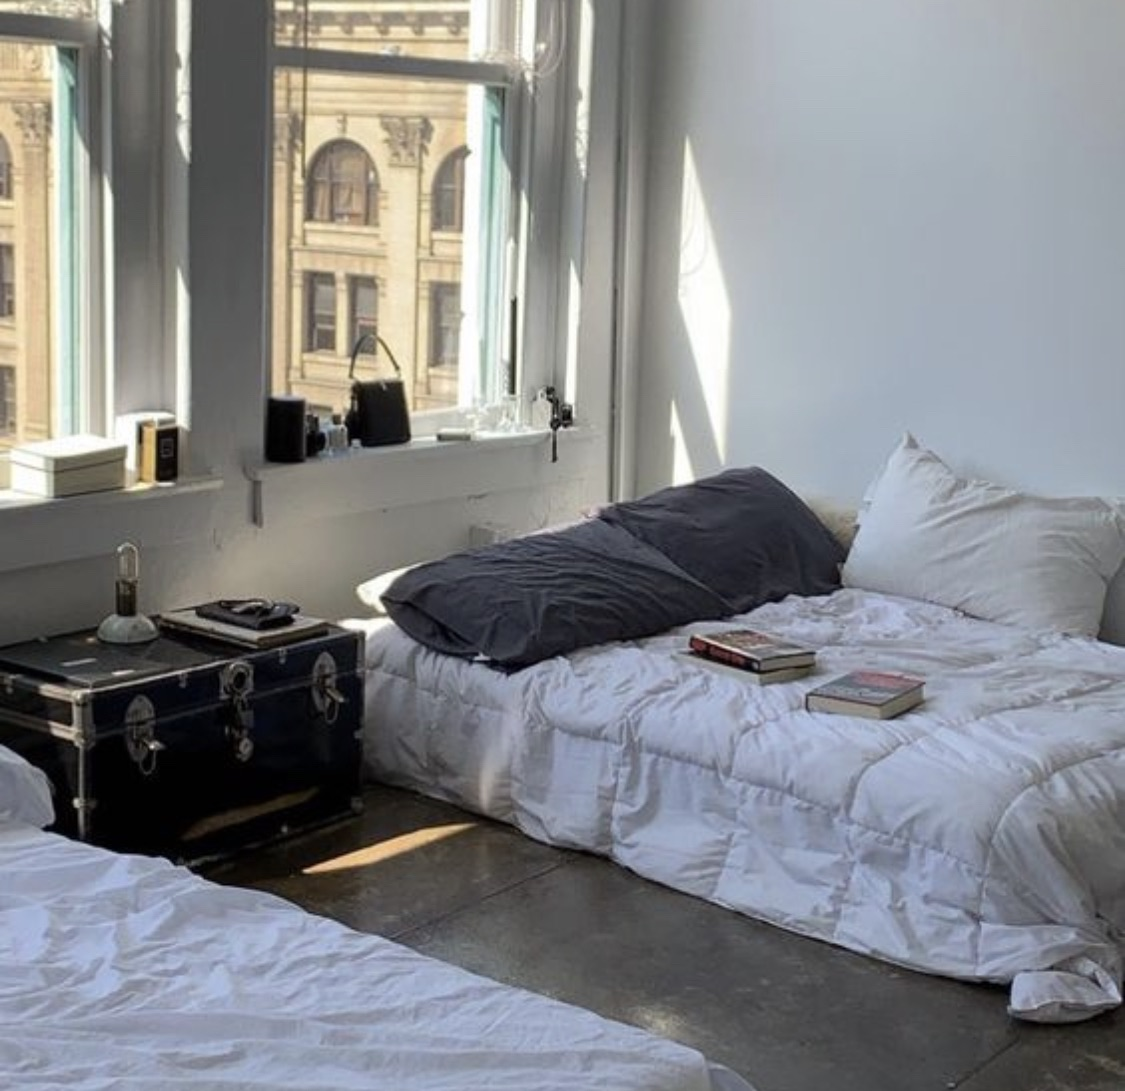 bedroom and apartment image